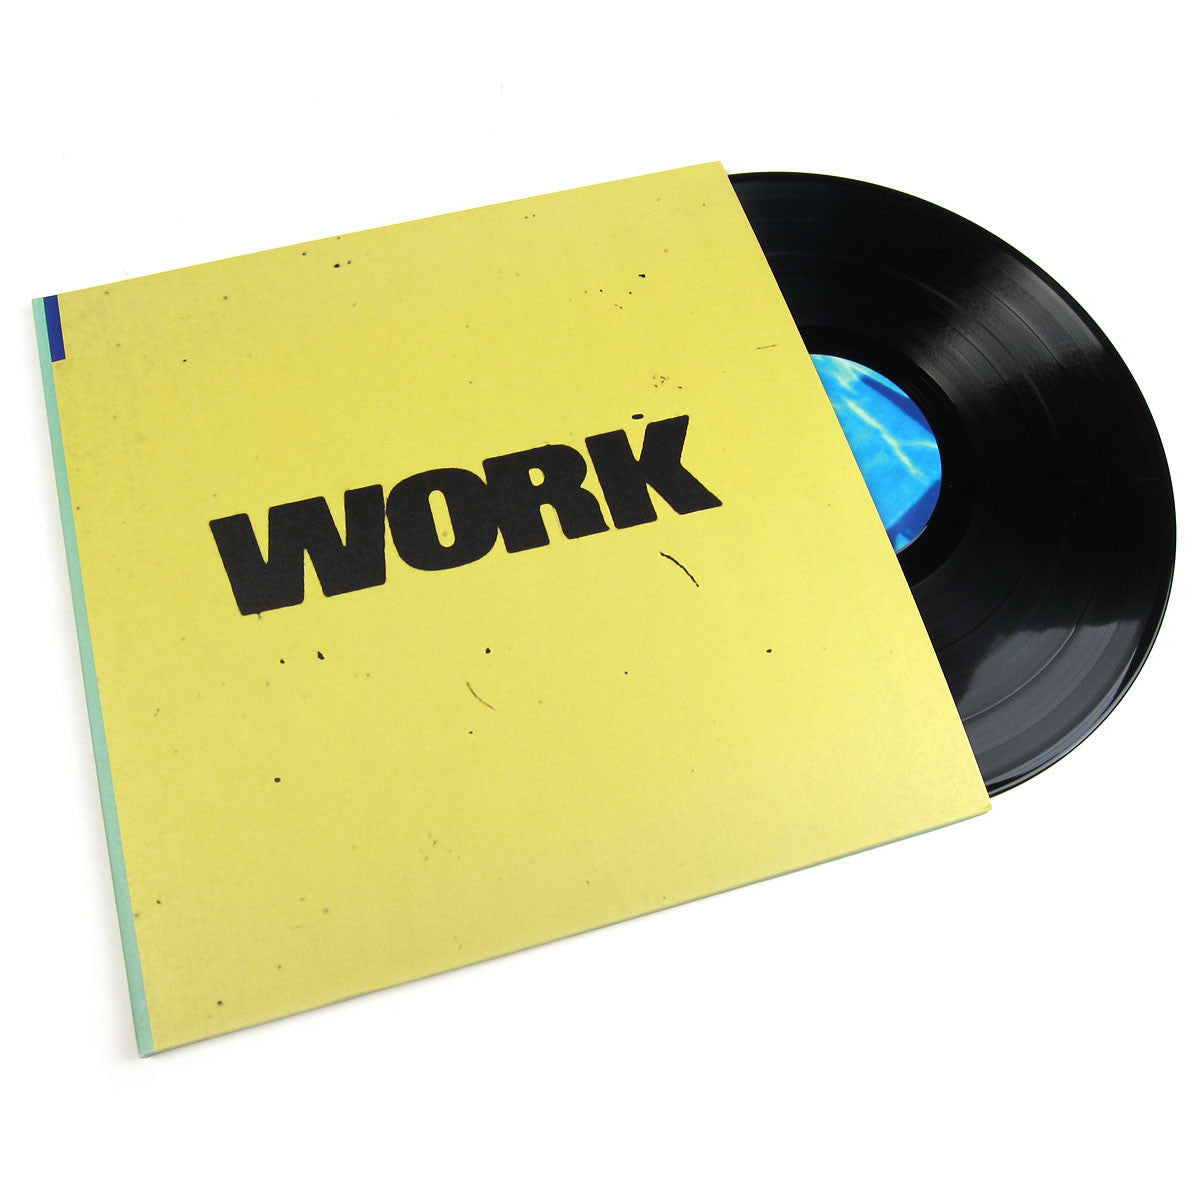 Other People: Work (Nicolas Jaar, Darkside) Vinyl 2LP